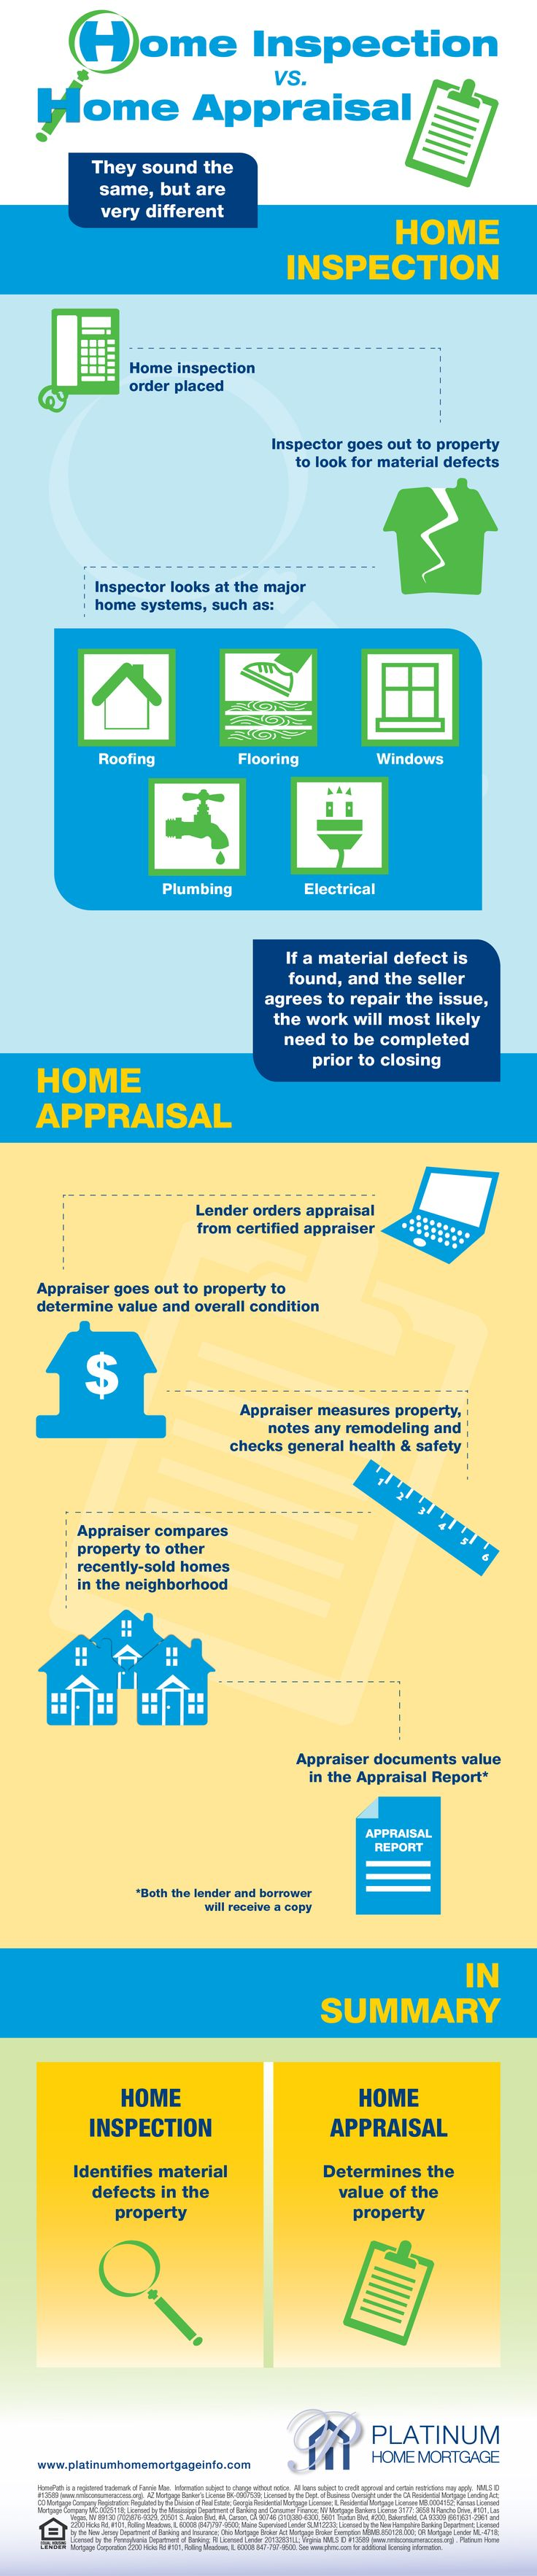 This is a good explanation of the Home Inspection v. Home Appraisal. It's good for both buyers and sellers! | Selling Your Home | Home appraisal, Home inspection, First time home buyers